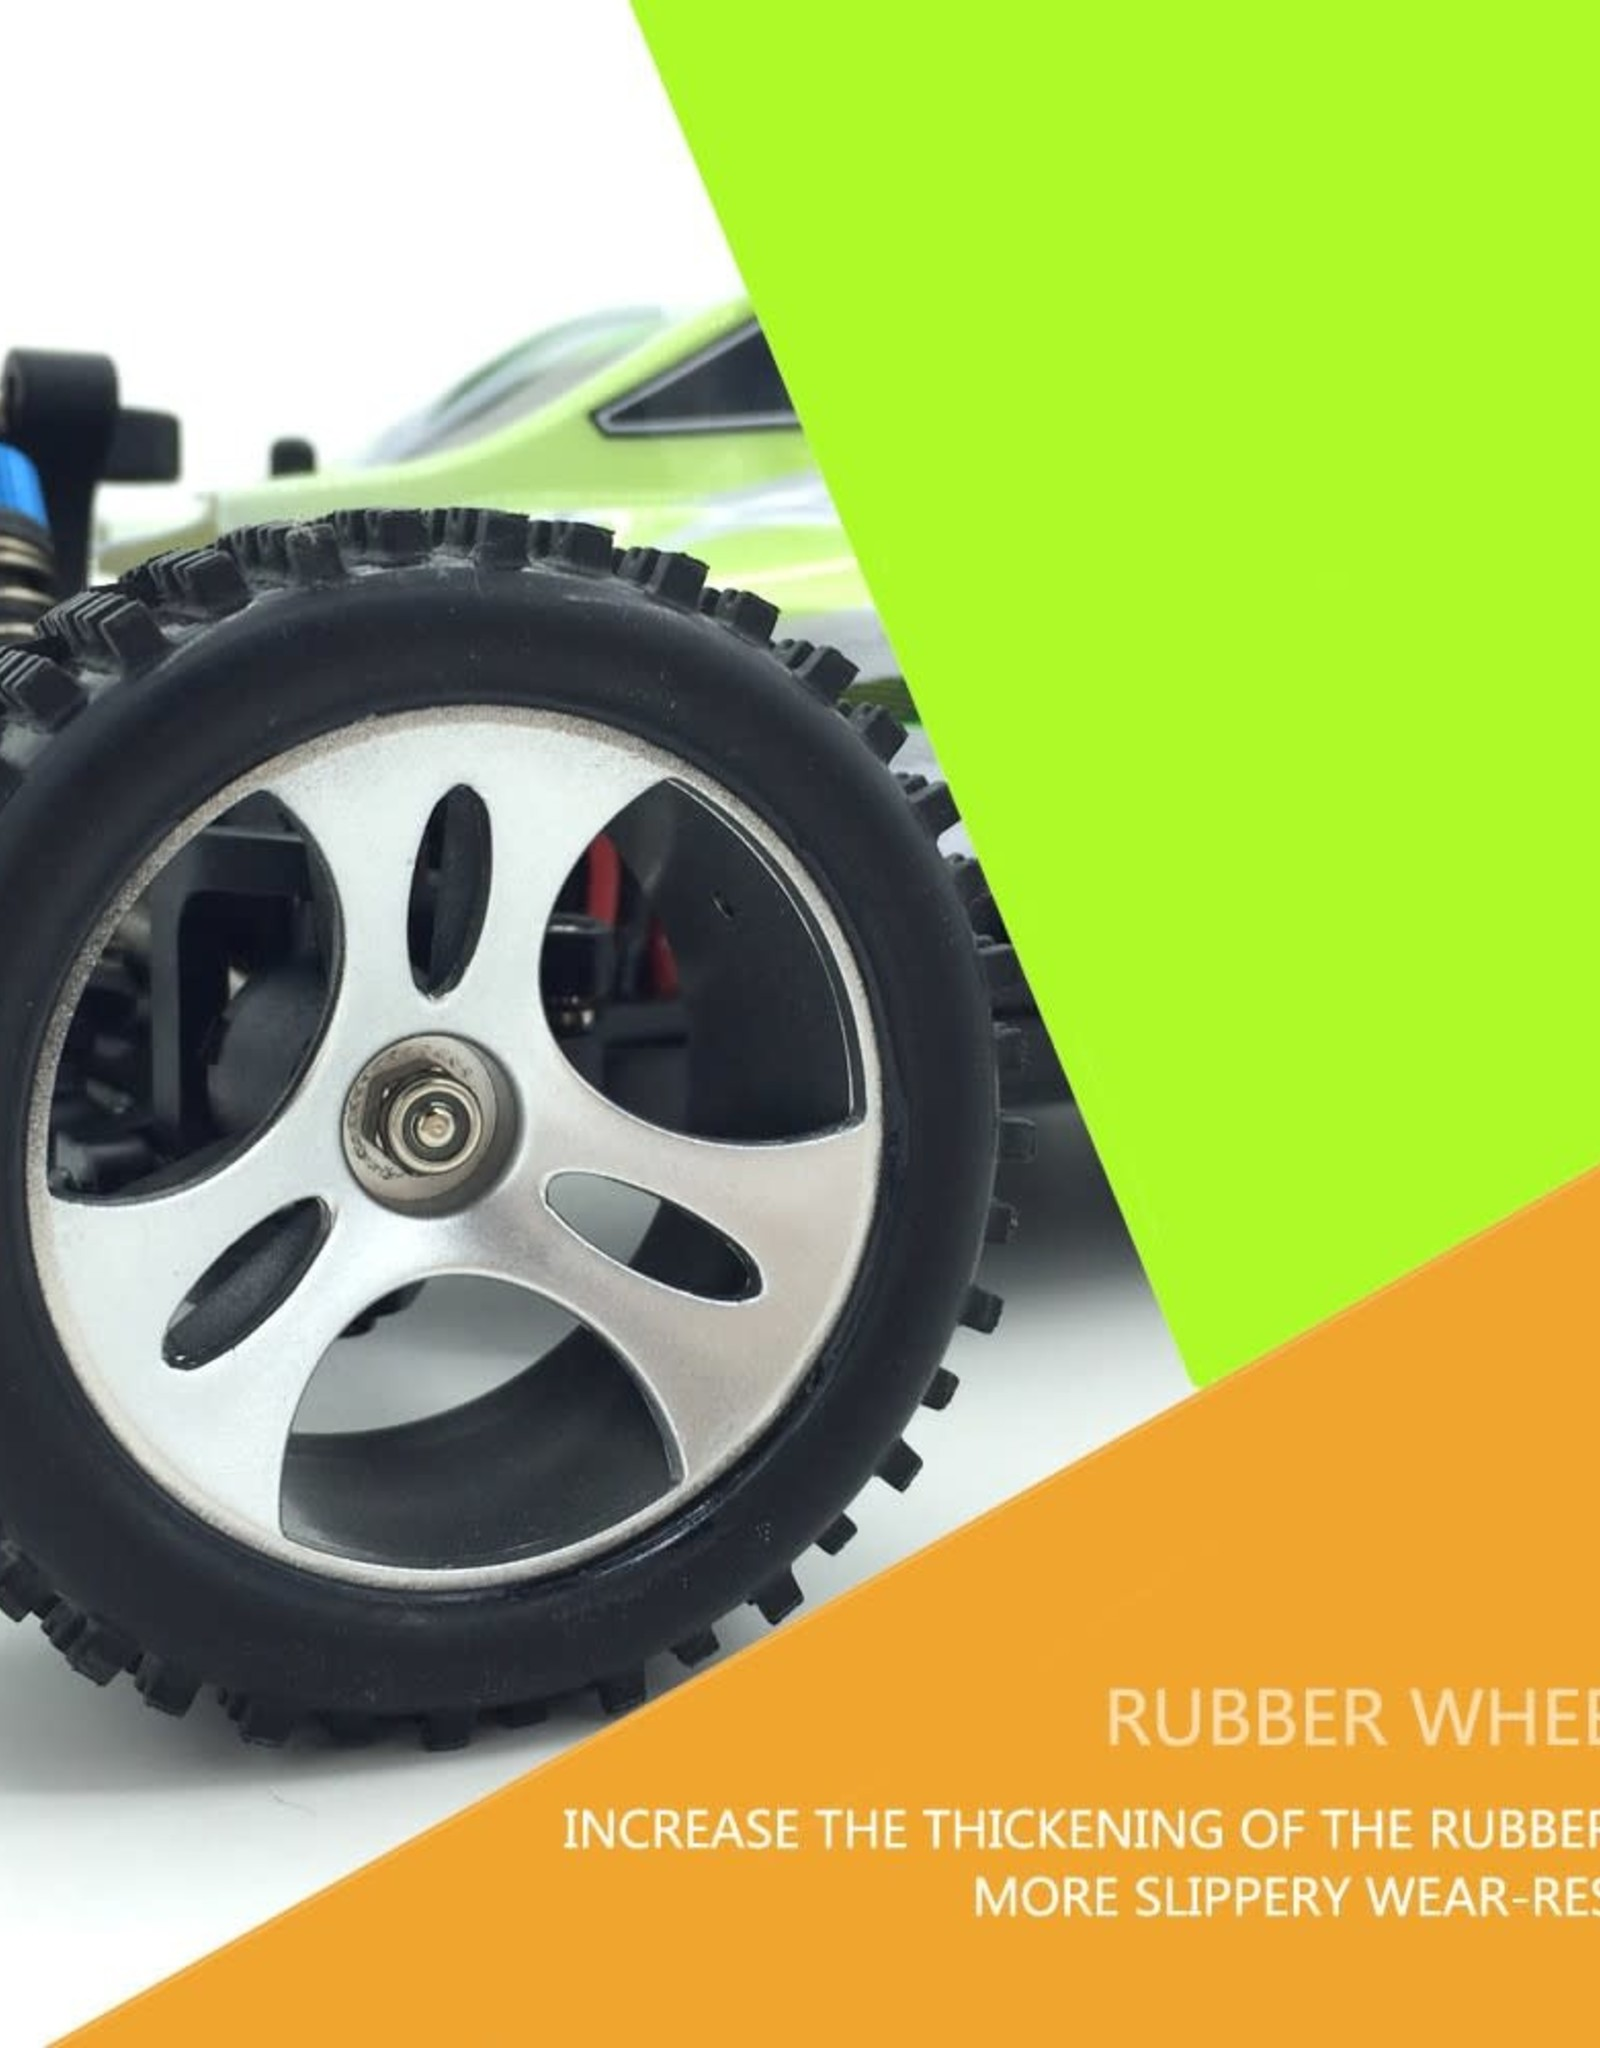 Wally Toys WLTOYS A959-B 1/18 2.4G 70km/h Buggy Off-road RC Racing Car Toy - US Plug